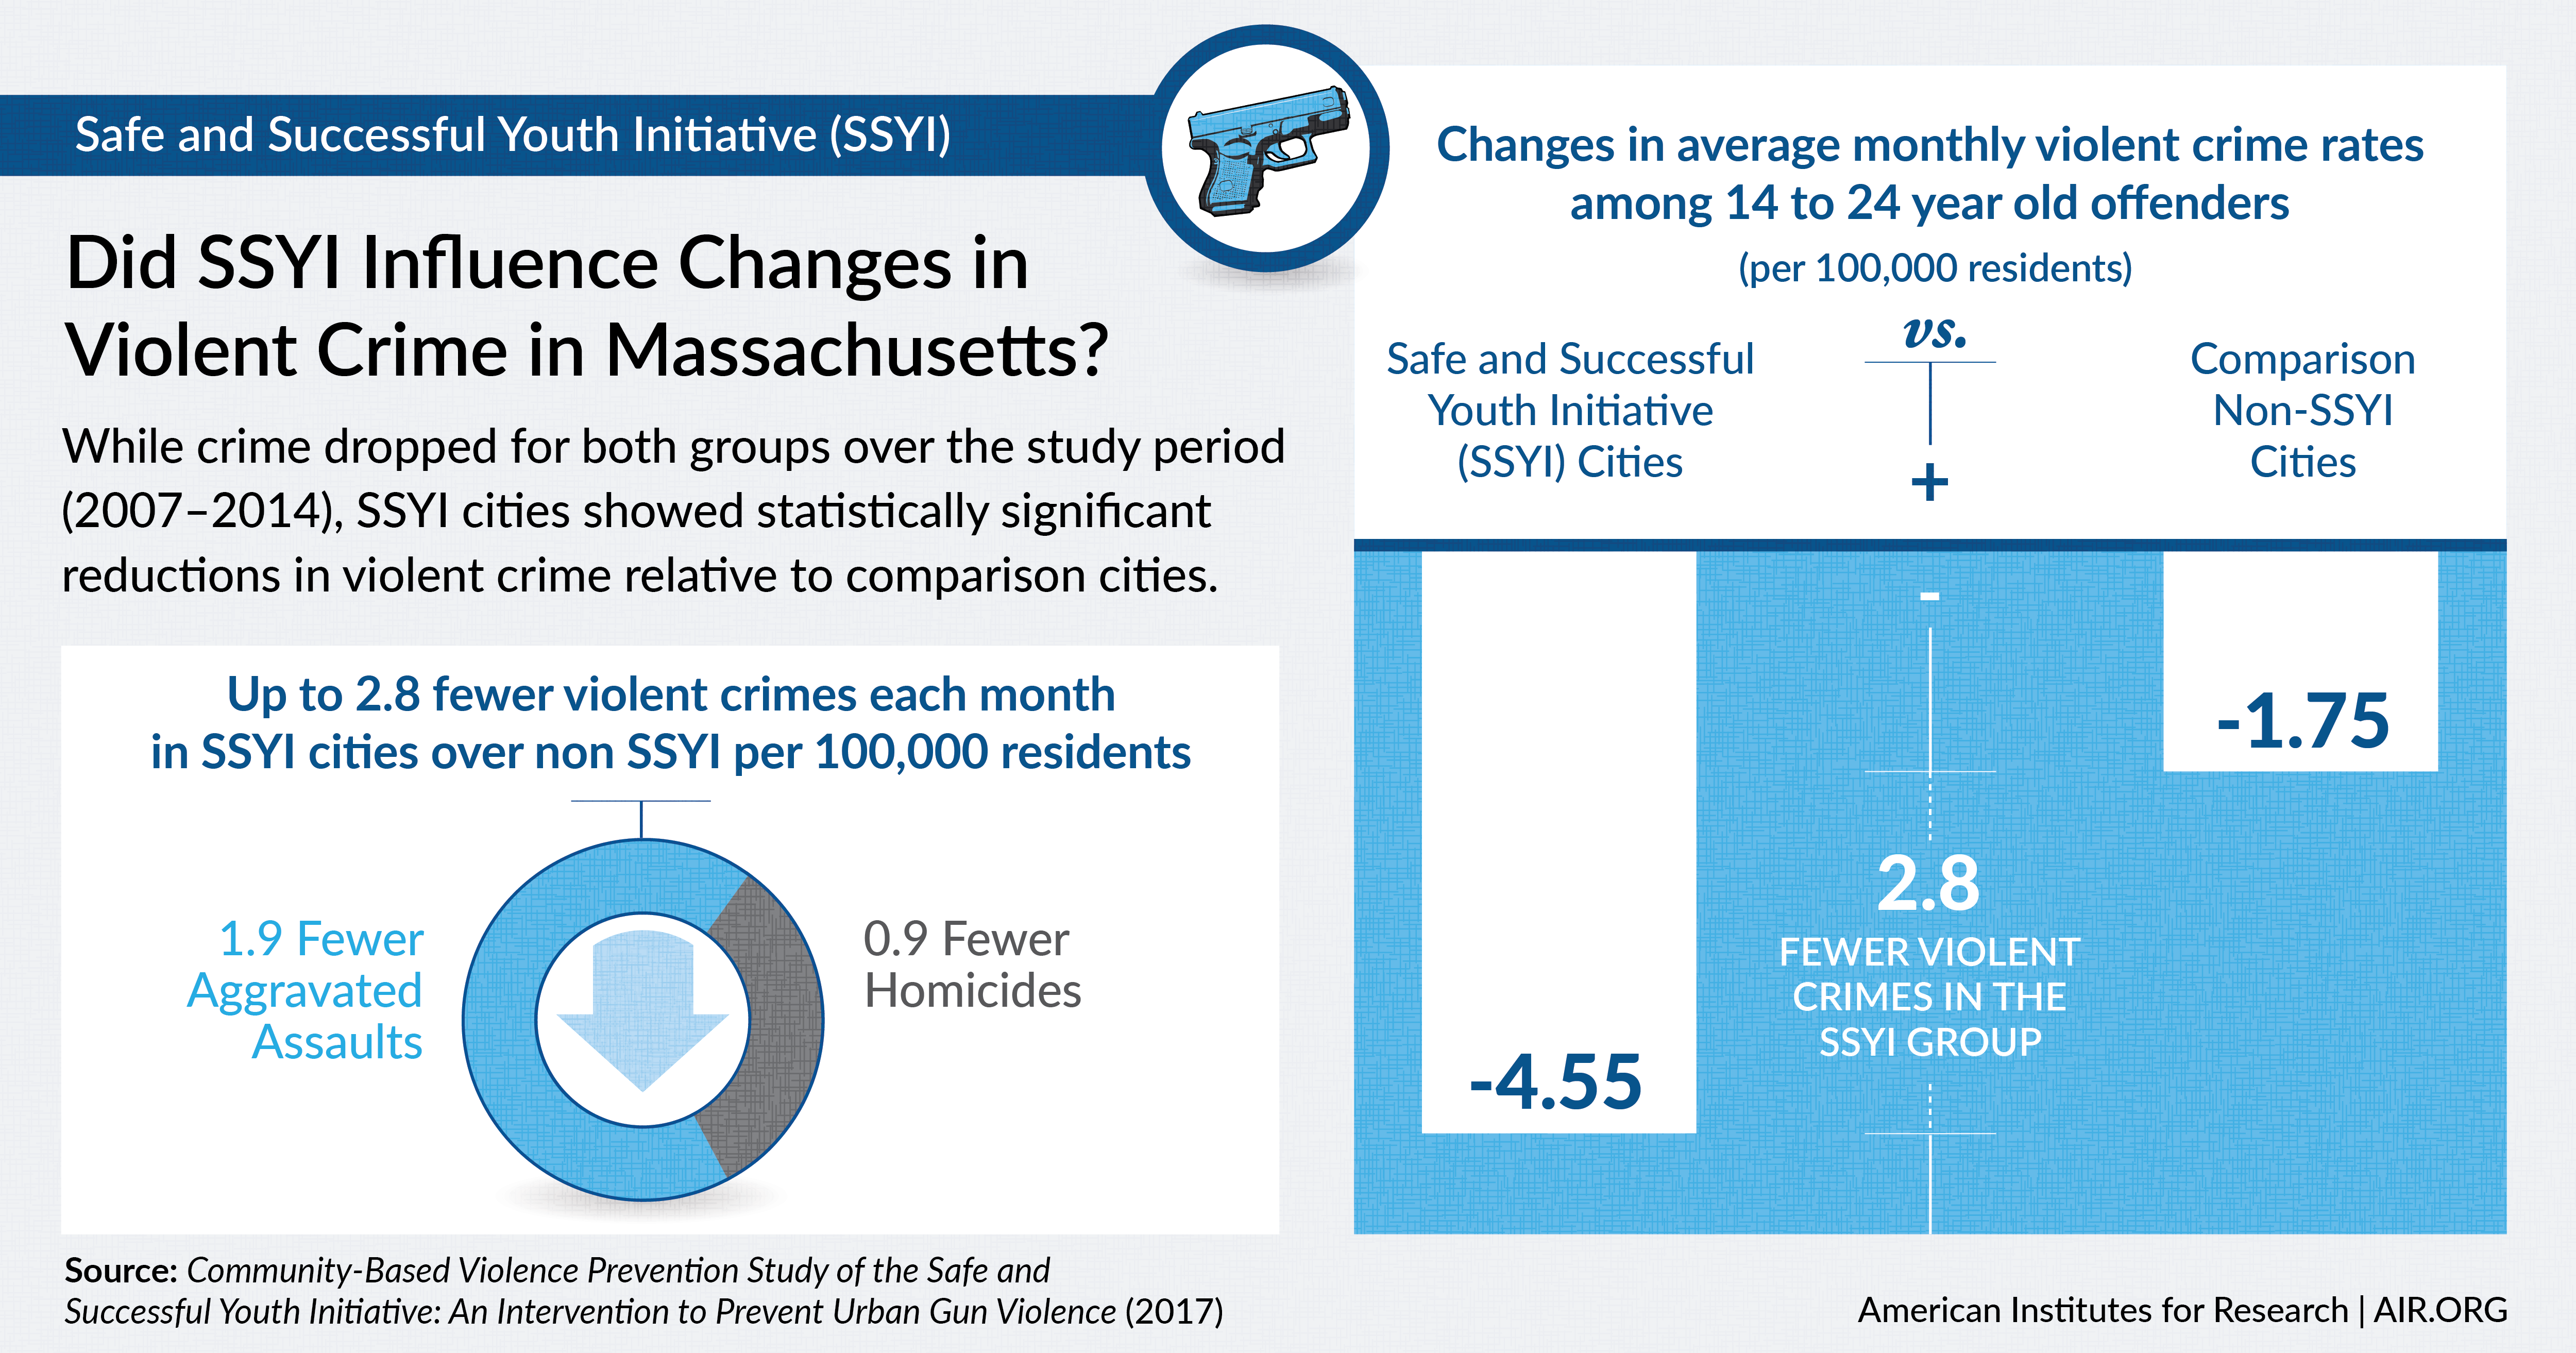 Infographic shows the findings from an AIR study of the Safe and Successful Youth Initiative program in Massachusetts. A bar chart illustrates that SSYI cities had an average of 2.8 fewer violent crimes compared to non SSYI Cites.